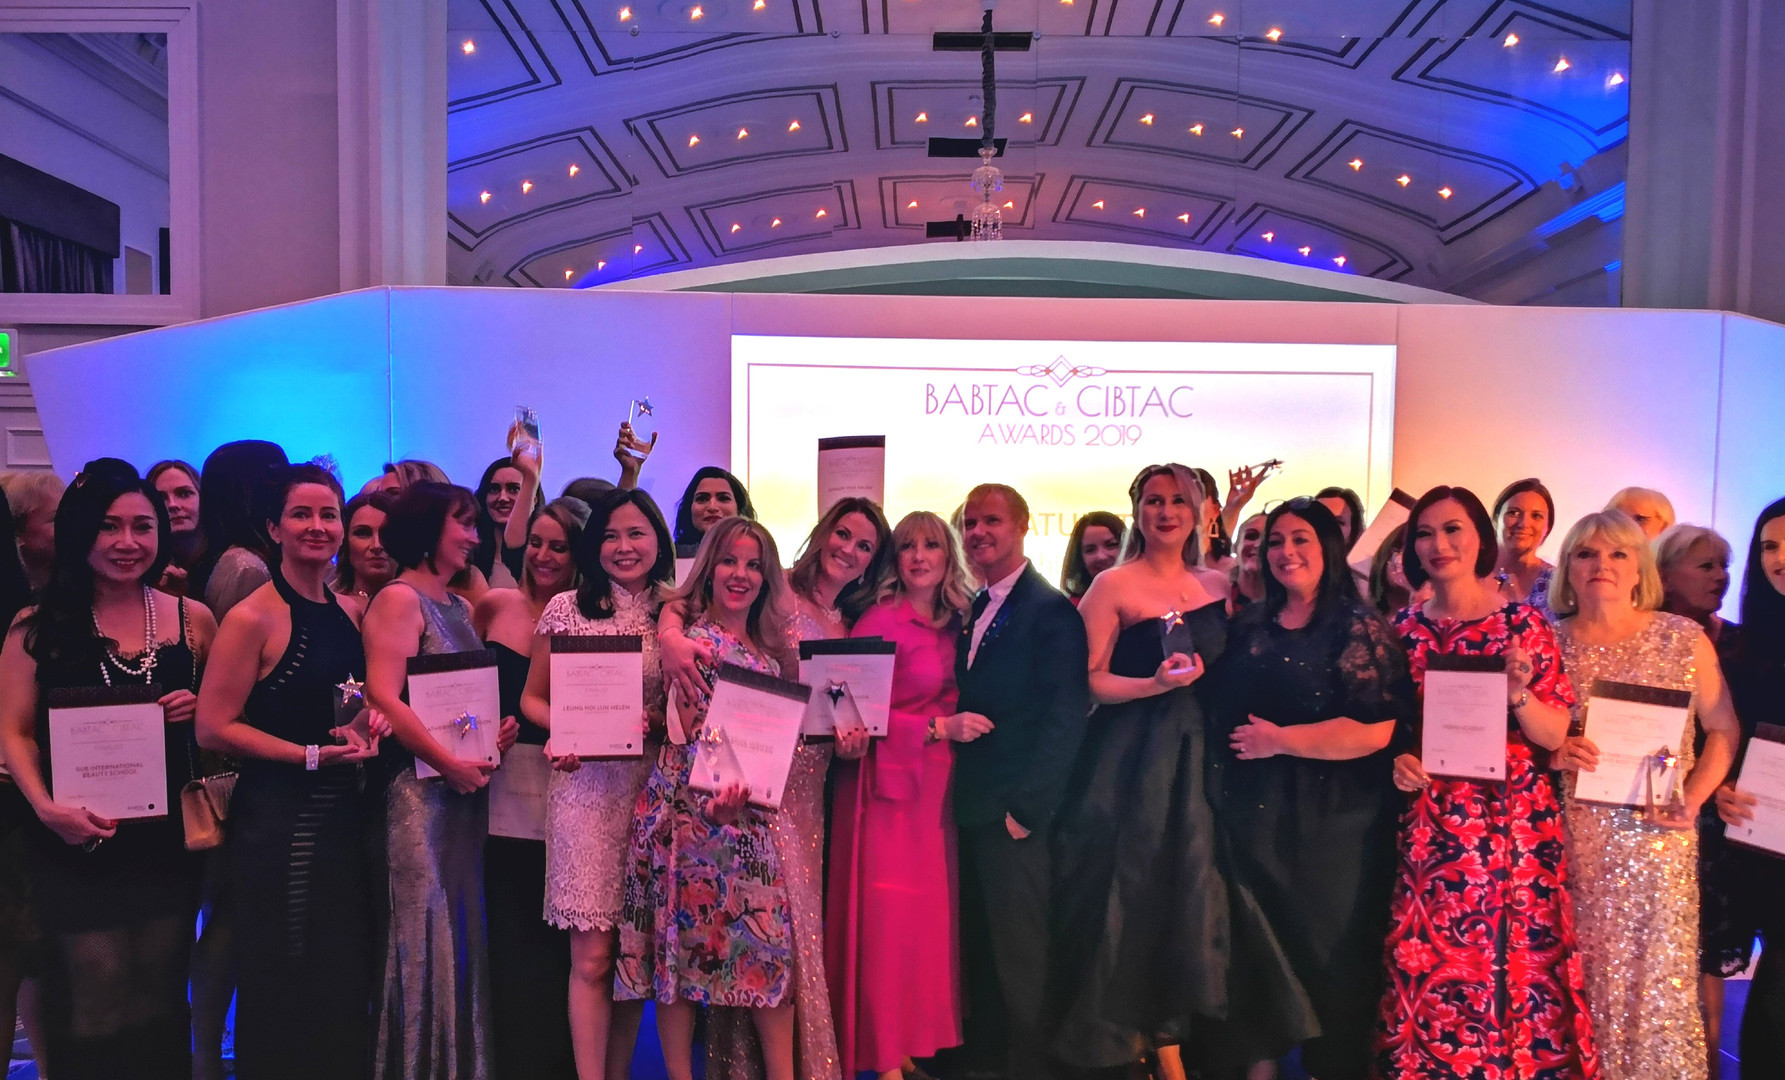 BABTAC & CIBTAC Awards 2019